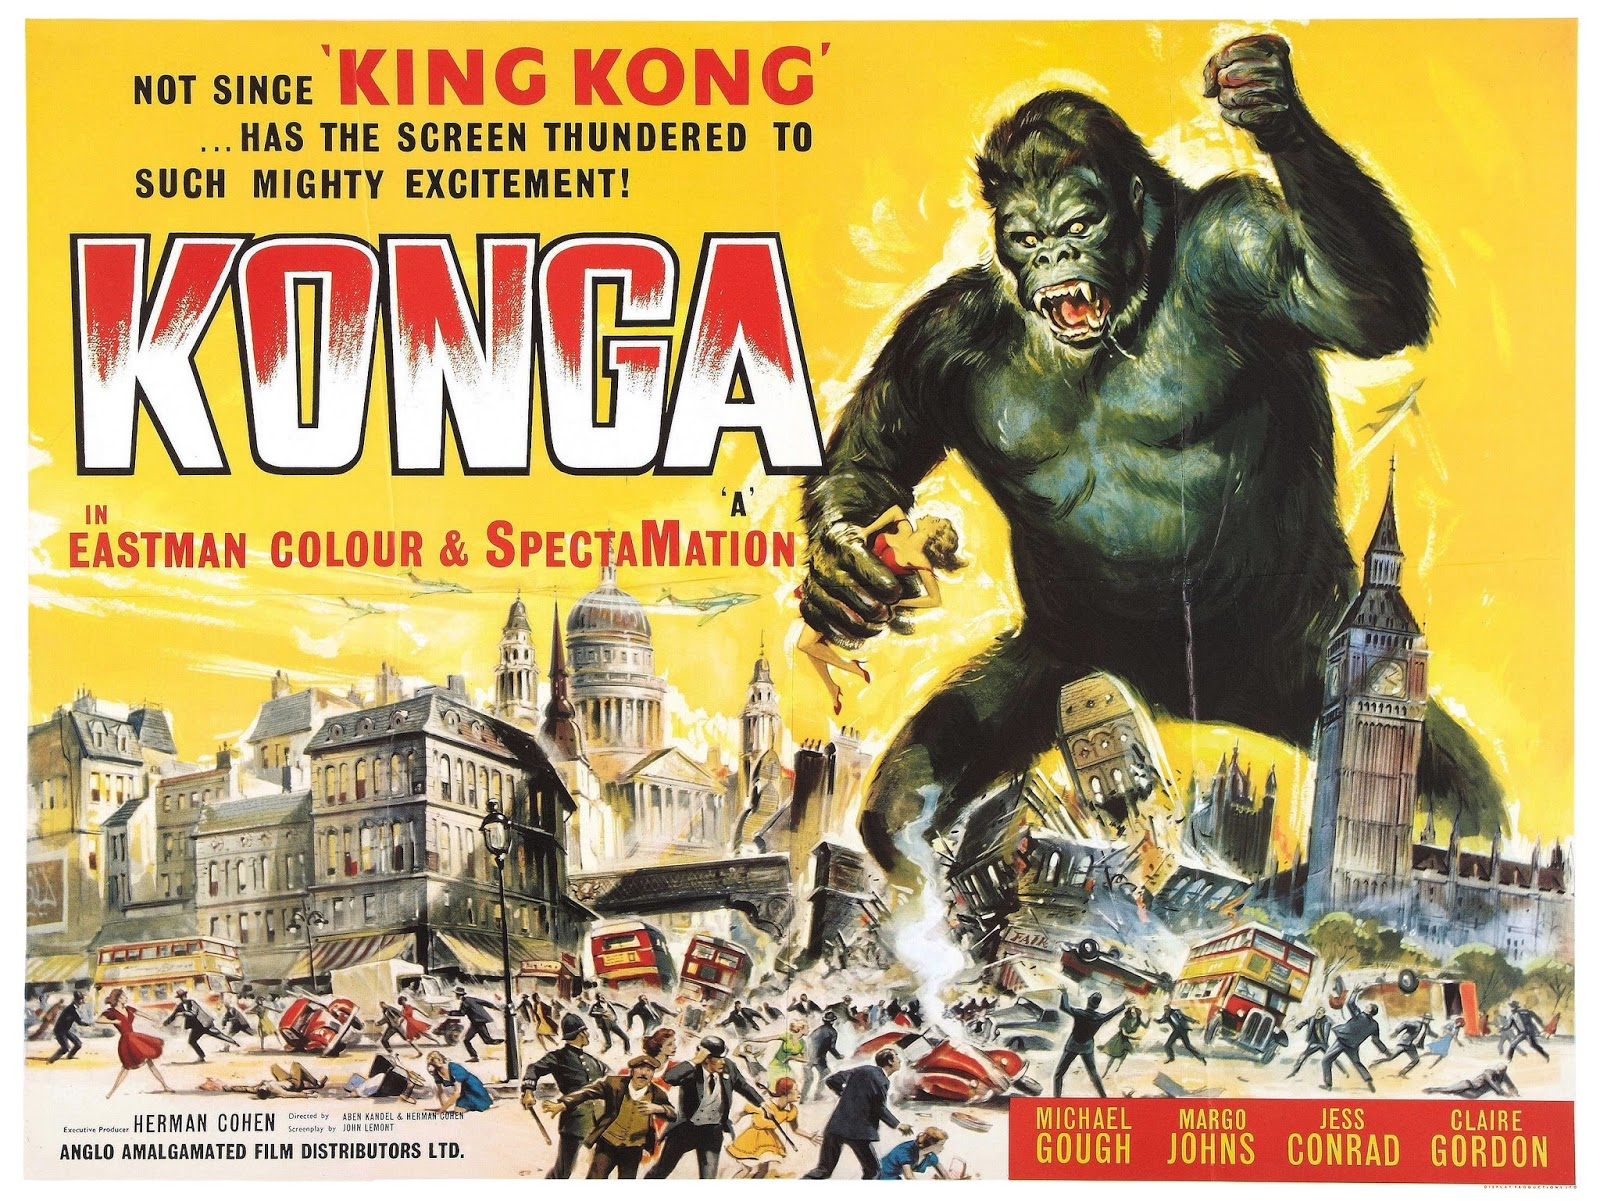 a290f5ece25 Konga is a 1961 British American international co-production science  fiction horror film directed by John Lemont and starring Michael Gough